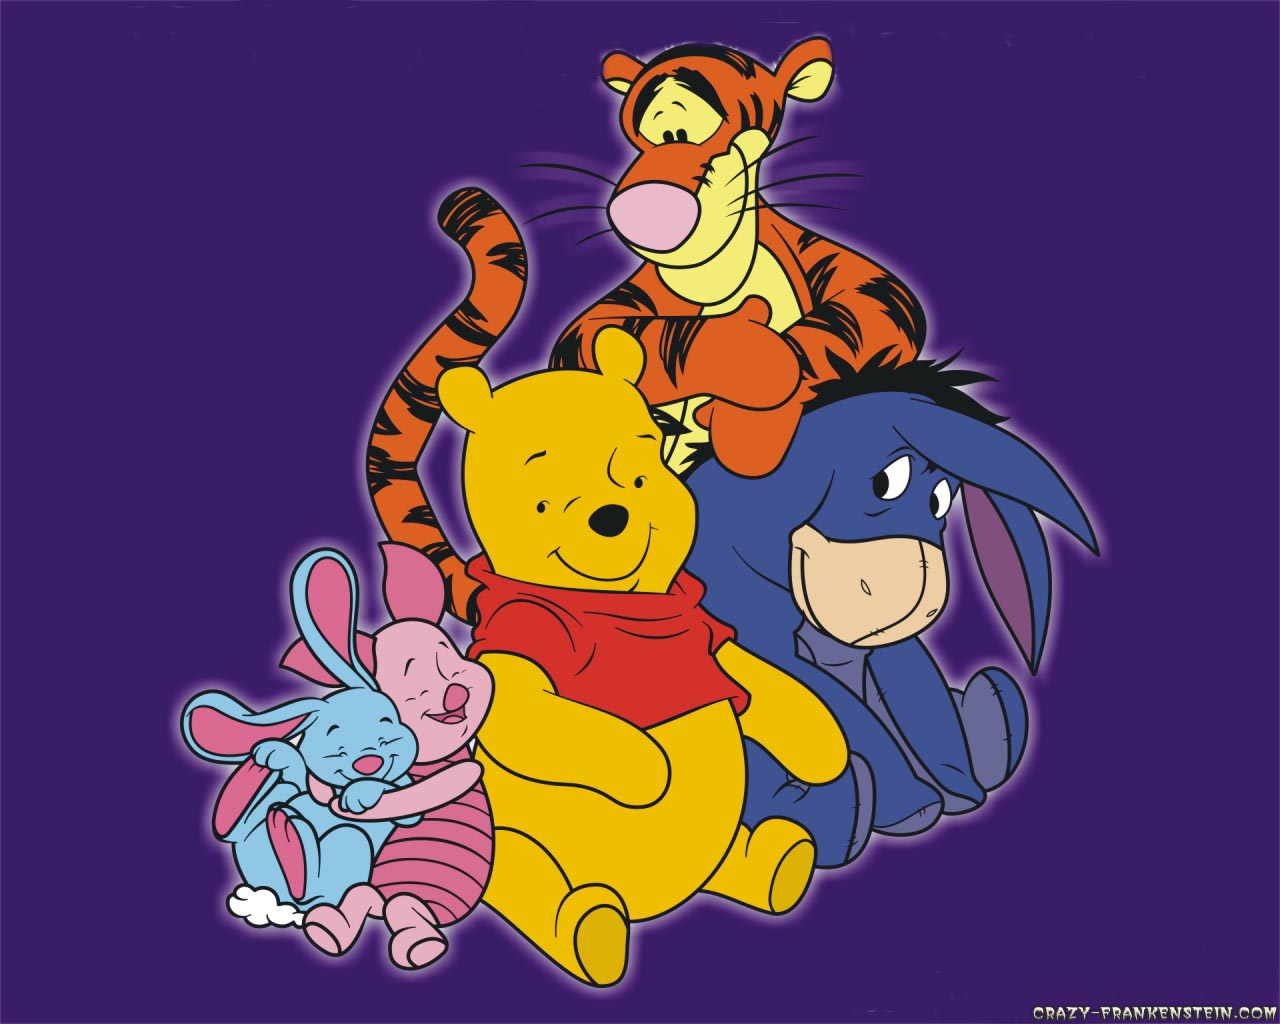 Cartoon tattoo pictures winnie the pooh and friends clipt art wallpaper - Winnie the pooh and friends wallpaper ...